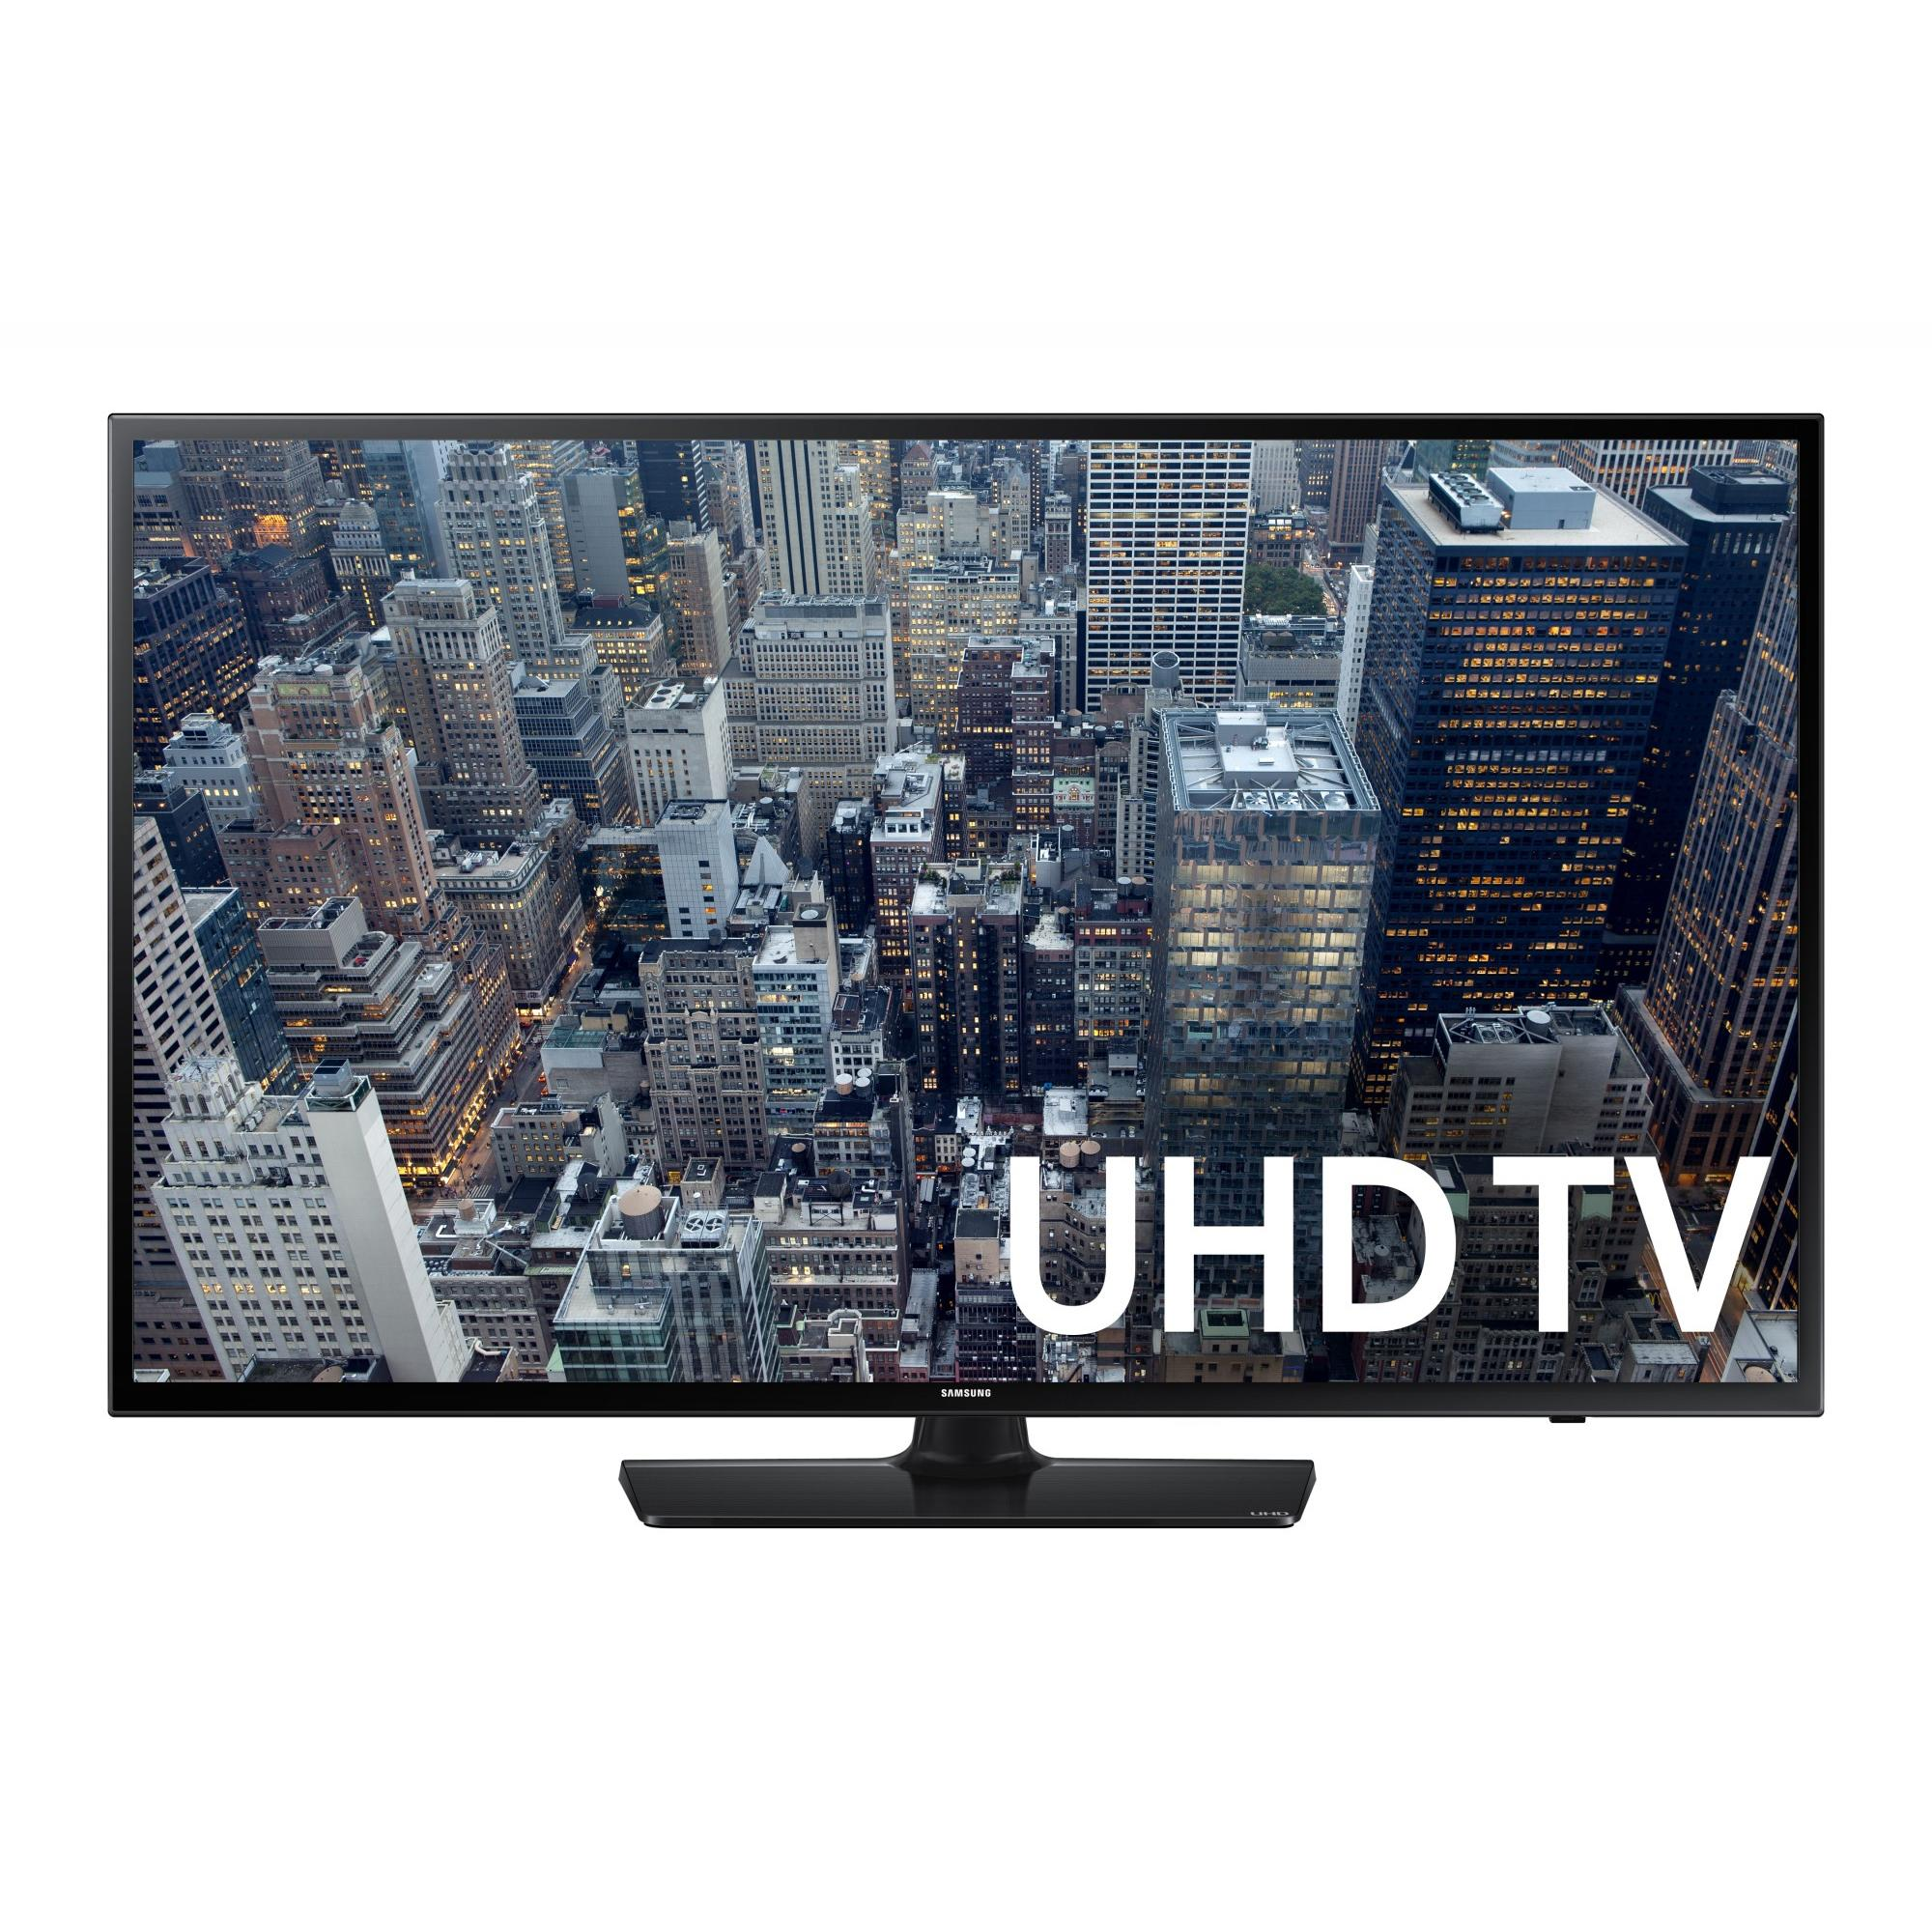 "Samsung un48ju6400f - 48"" class - 6 series led tv - smart tv - 4k uhd (2160p) 3840 x 2160 - uhd dimming - black"